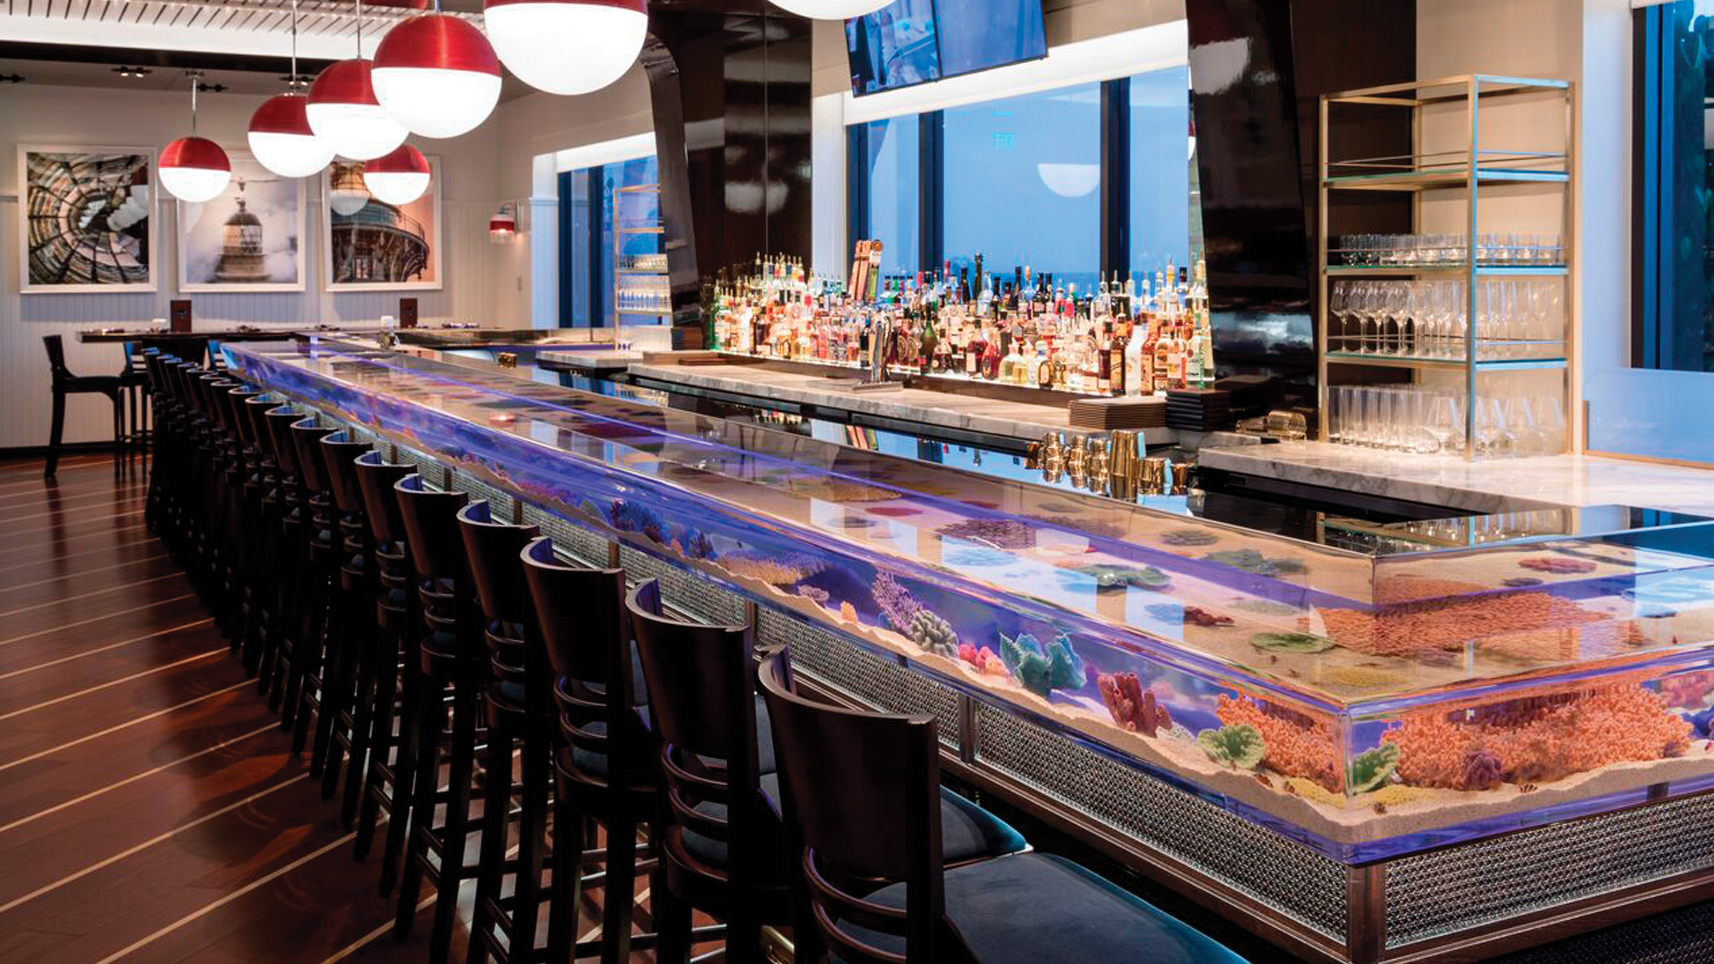 Breakers Hotel Seafood Bar